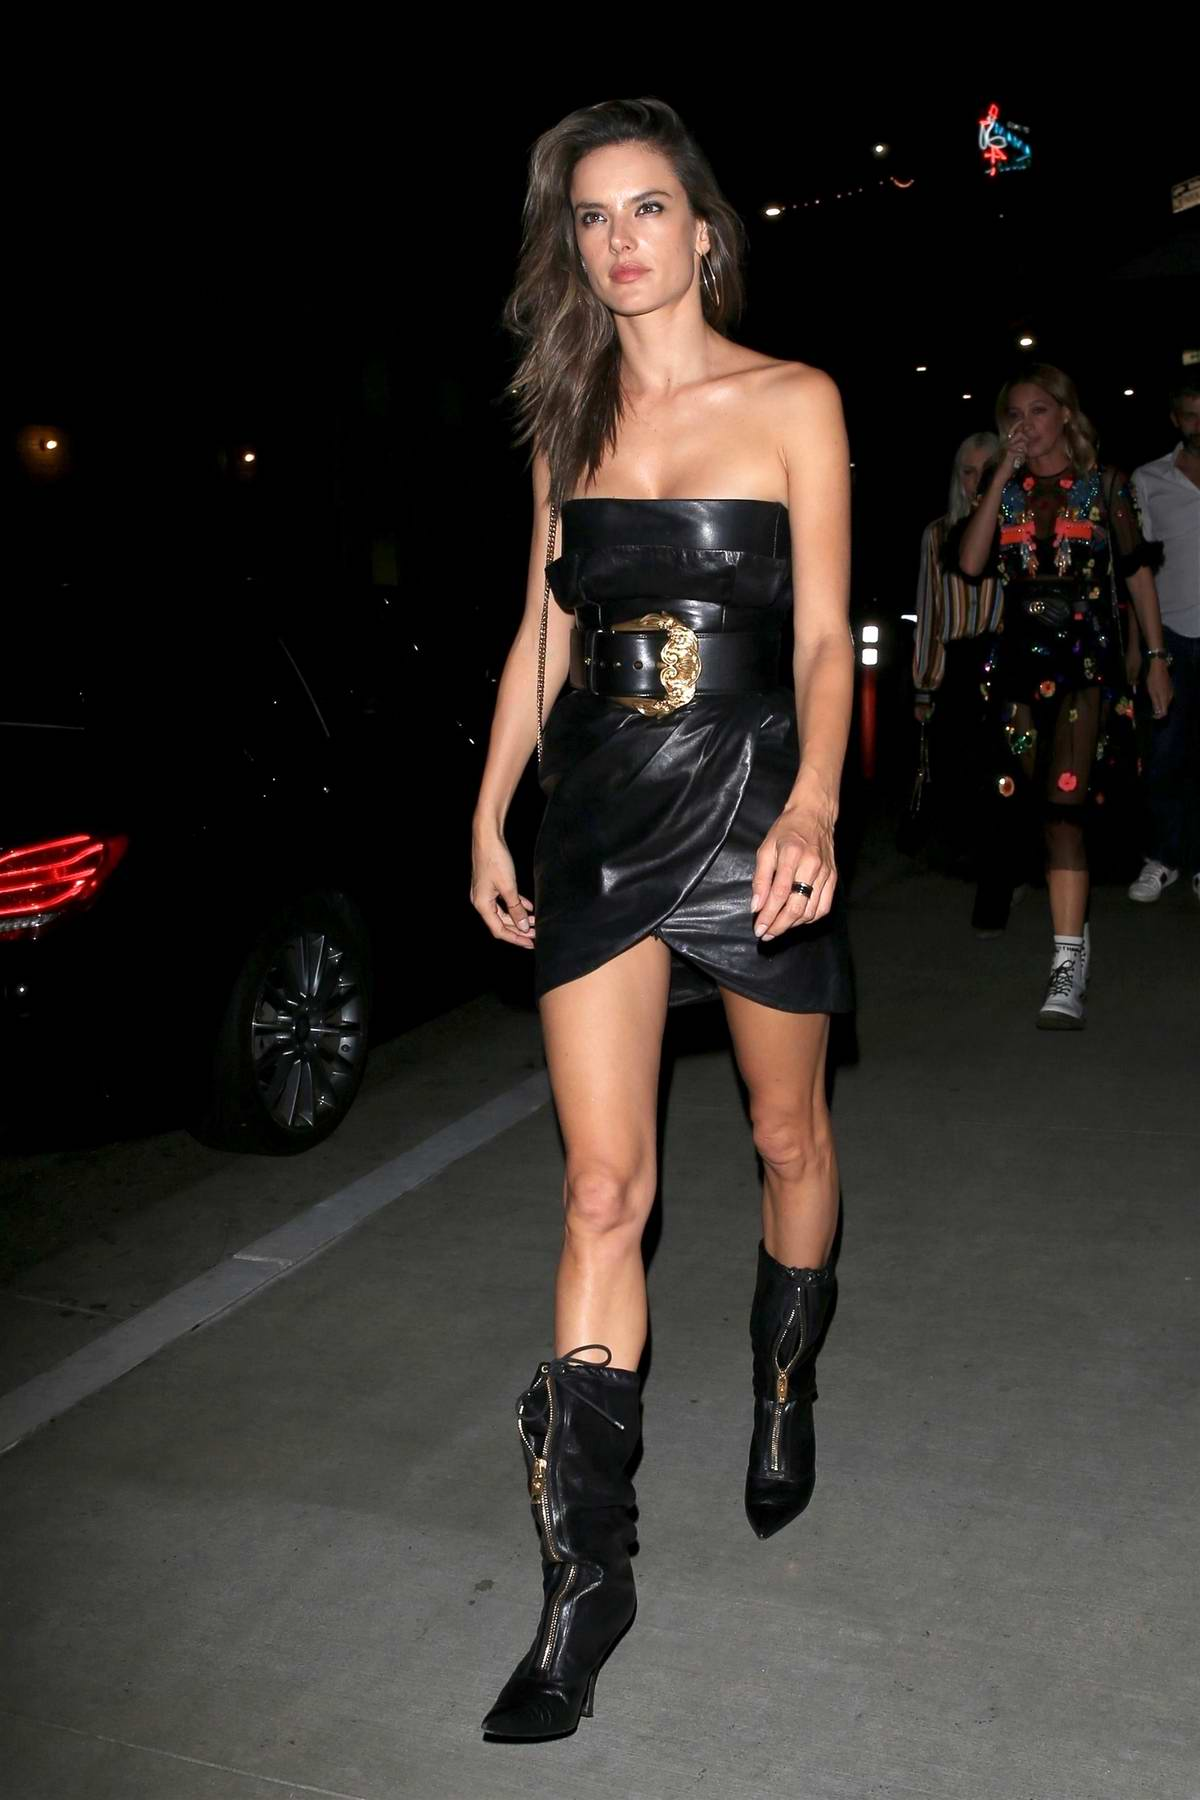 Alessandra Ambrosio wears black leather dress with matching leather boots as she leaves TAO restaurant after a night out with her friends in Hollywood, Los Angeles